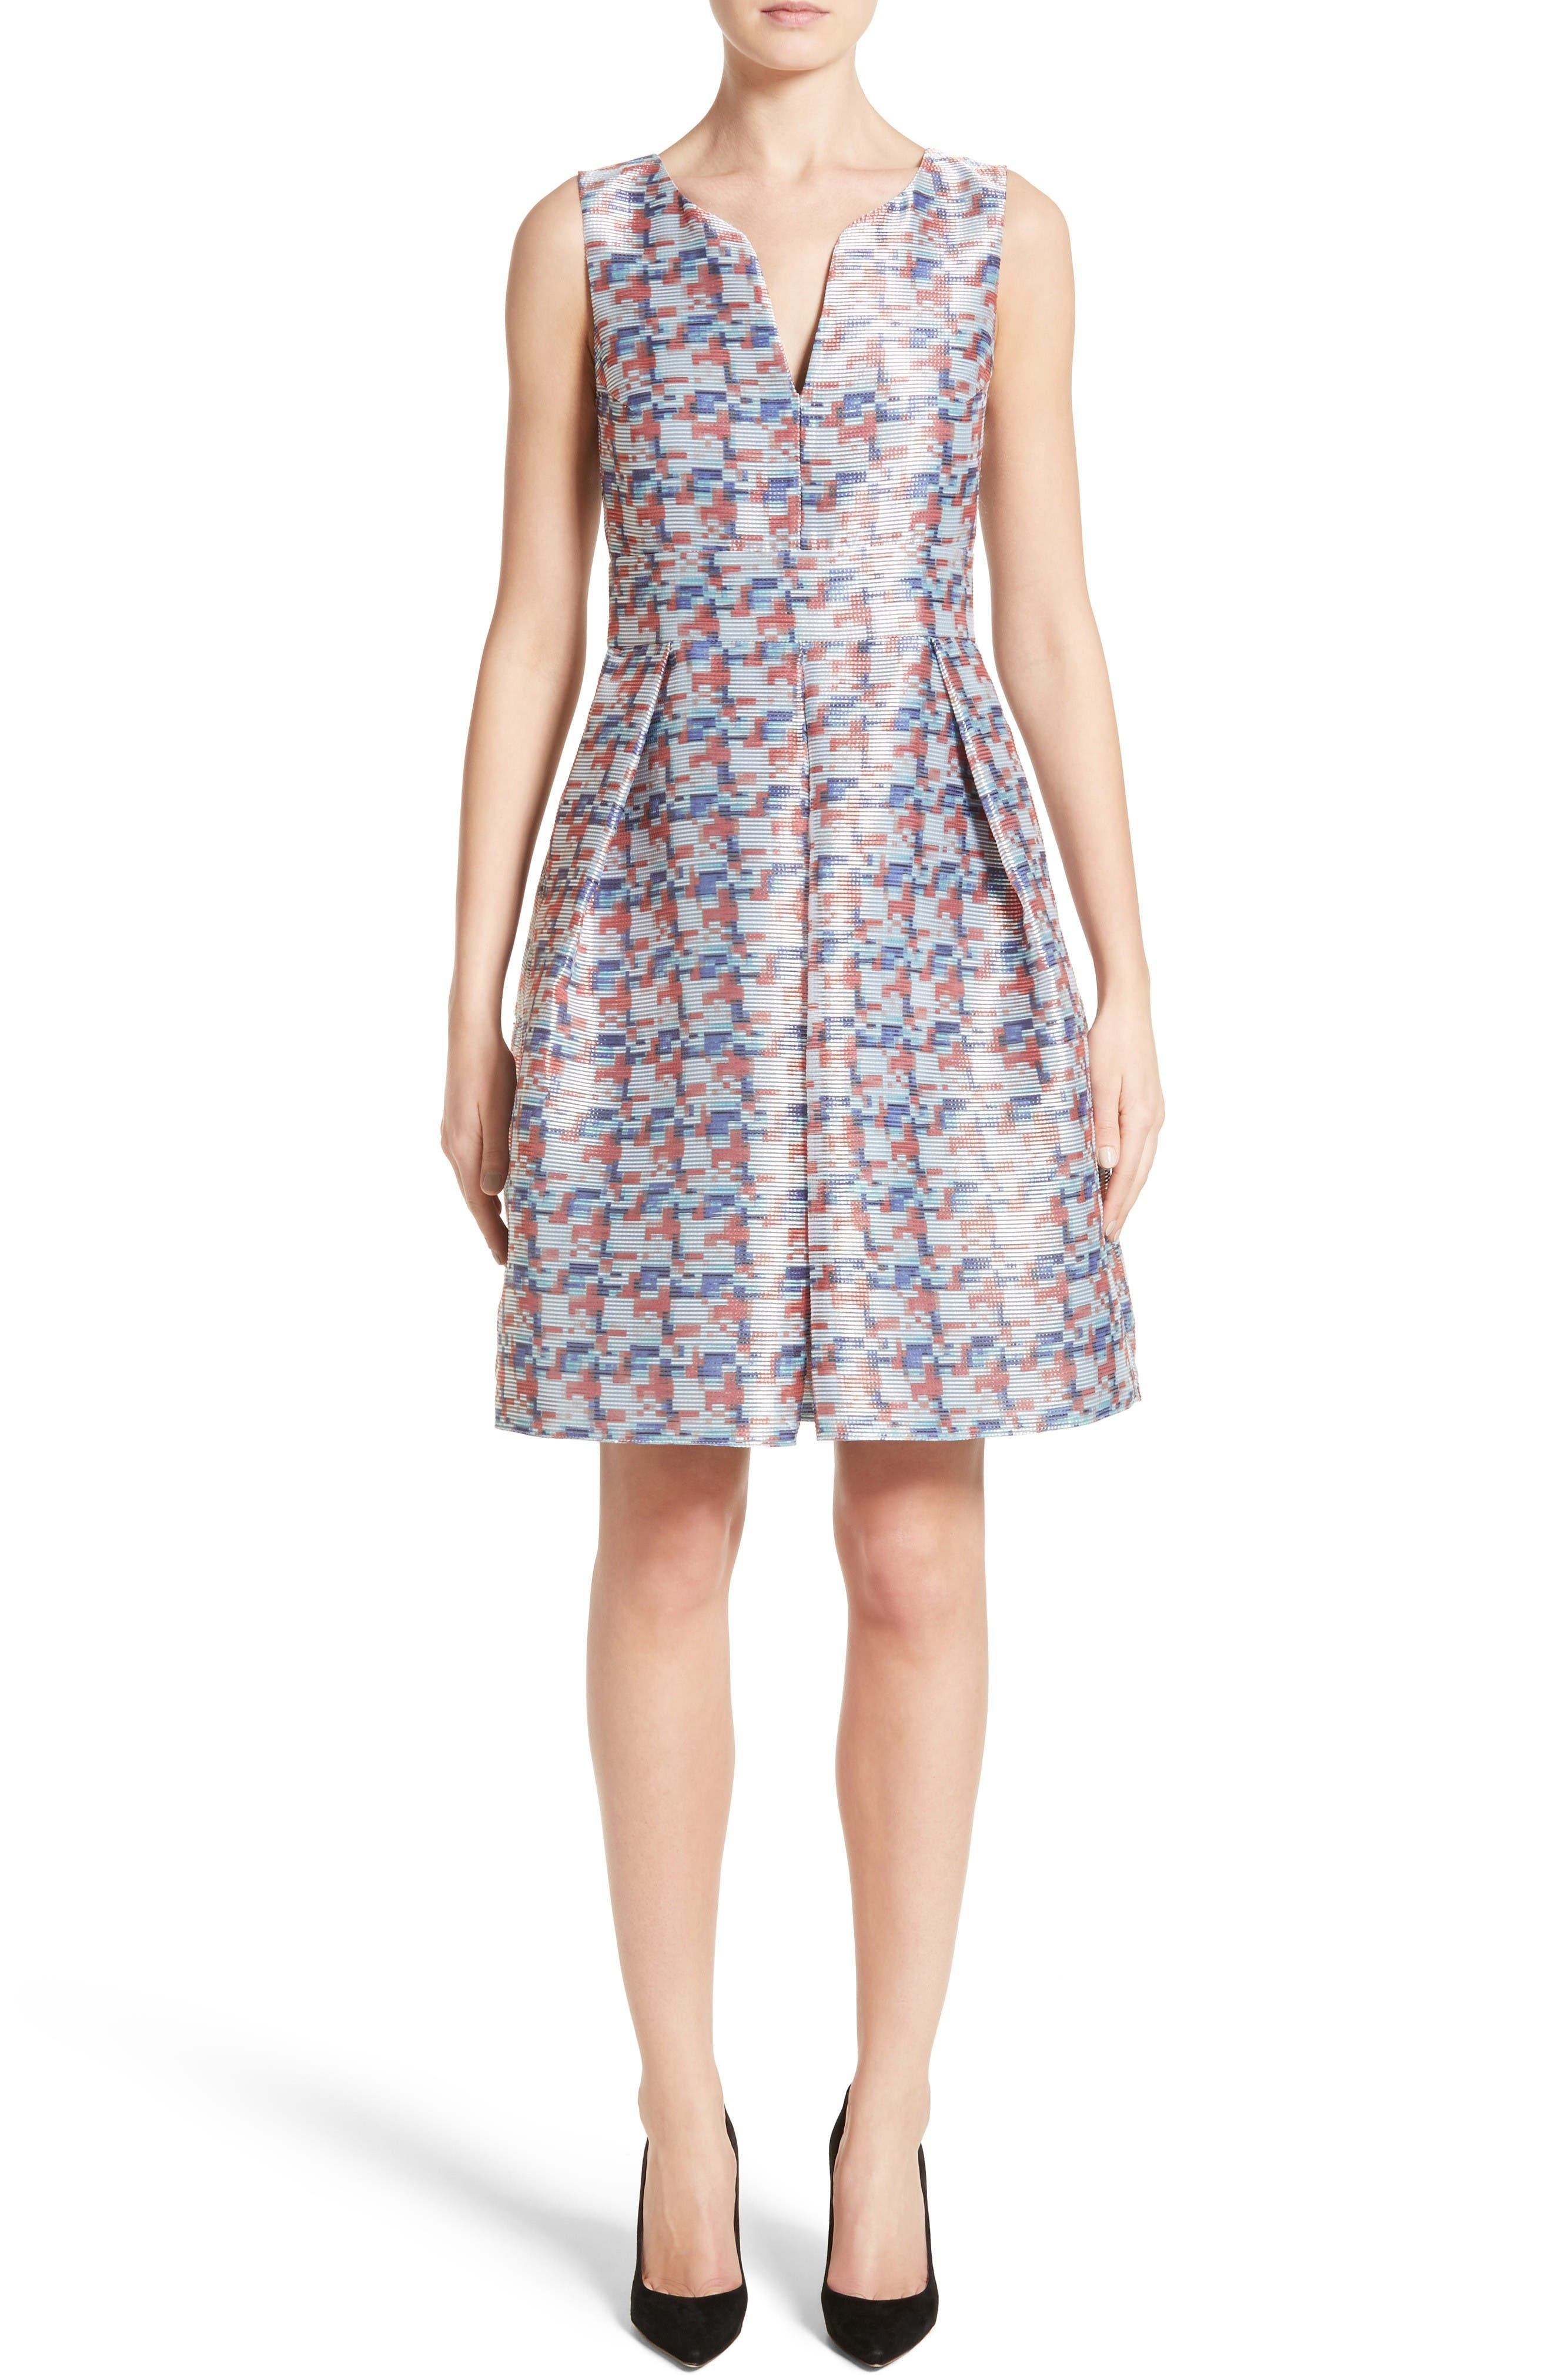 Alternate Image 1 Selected - Armani Collezioni Pixel Print Fit & Flare Dress